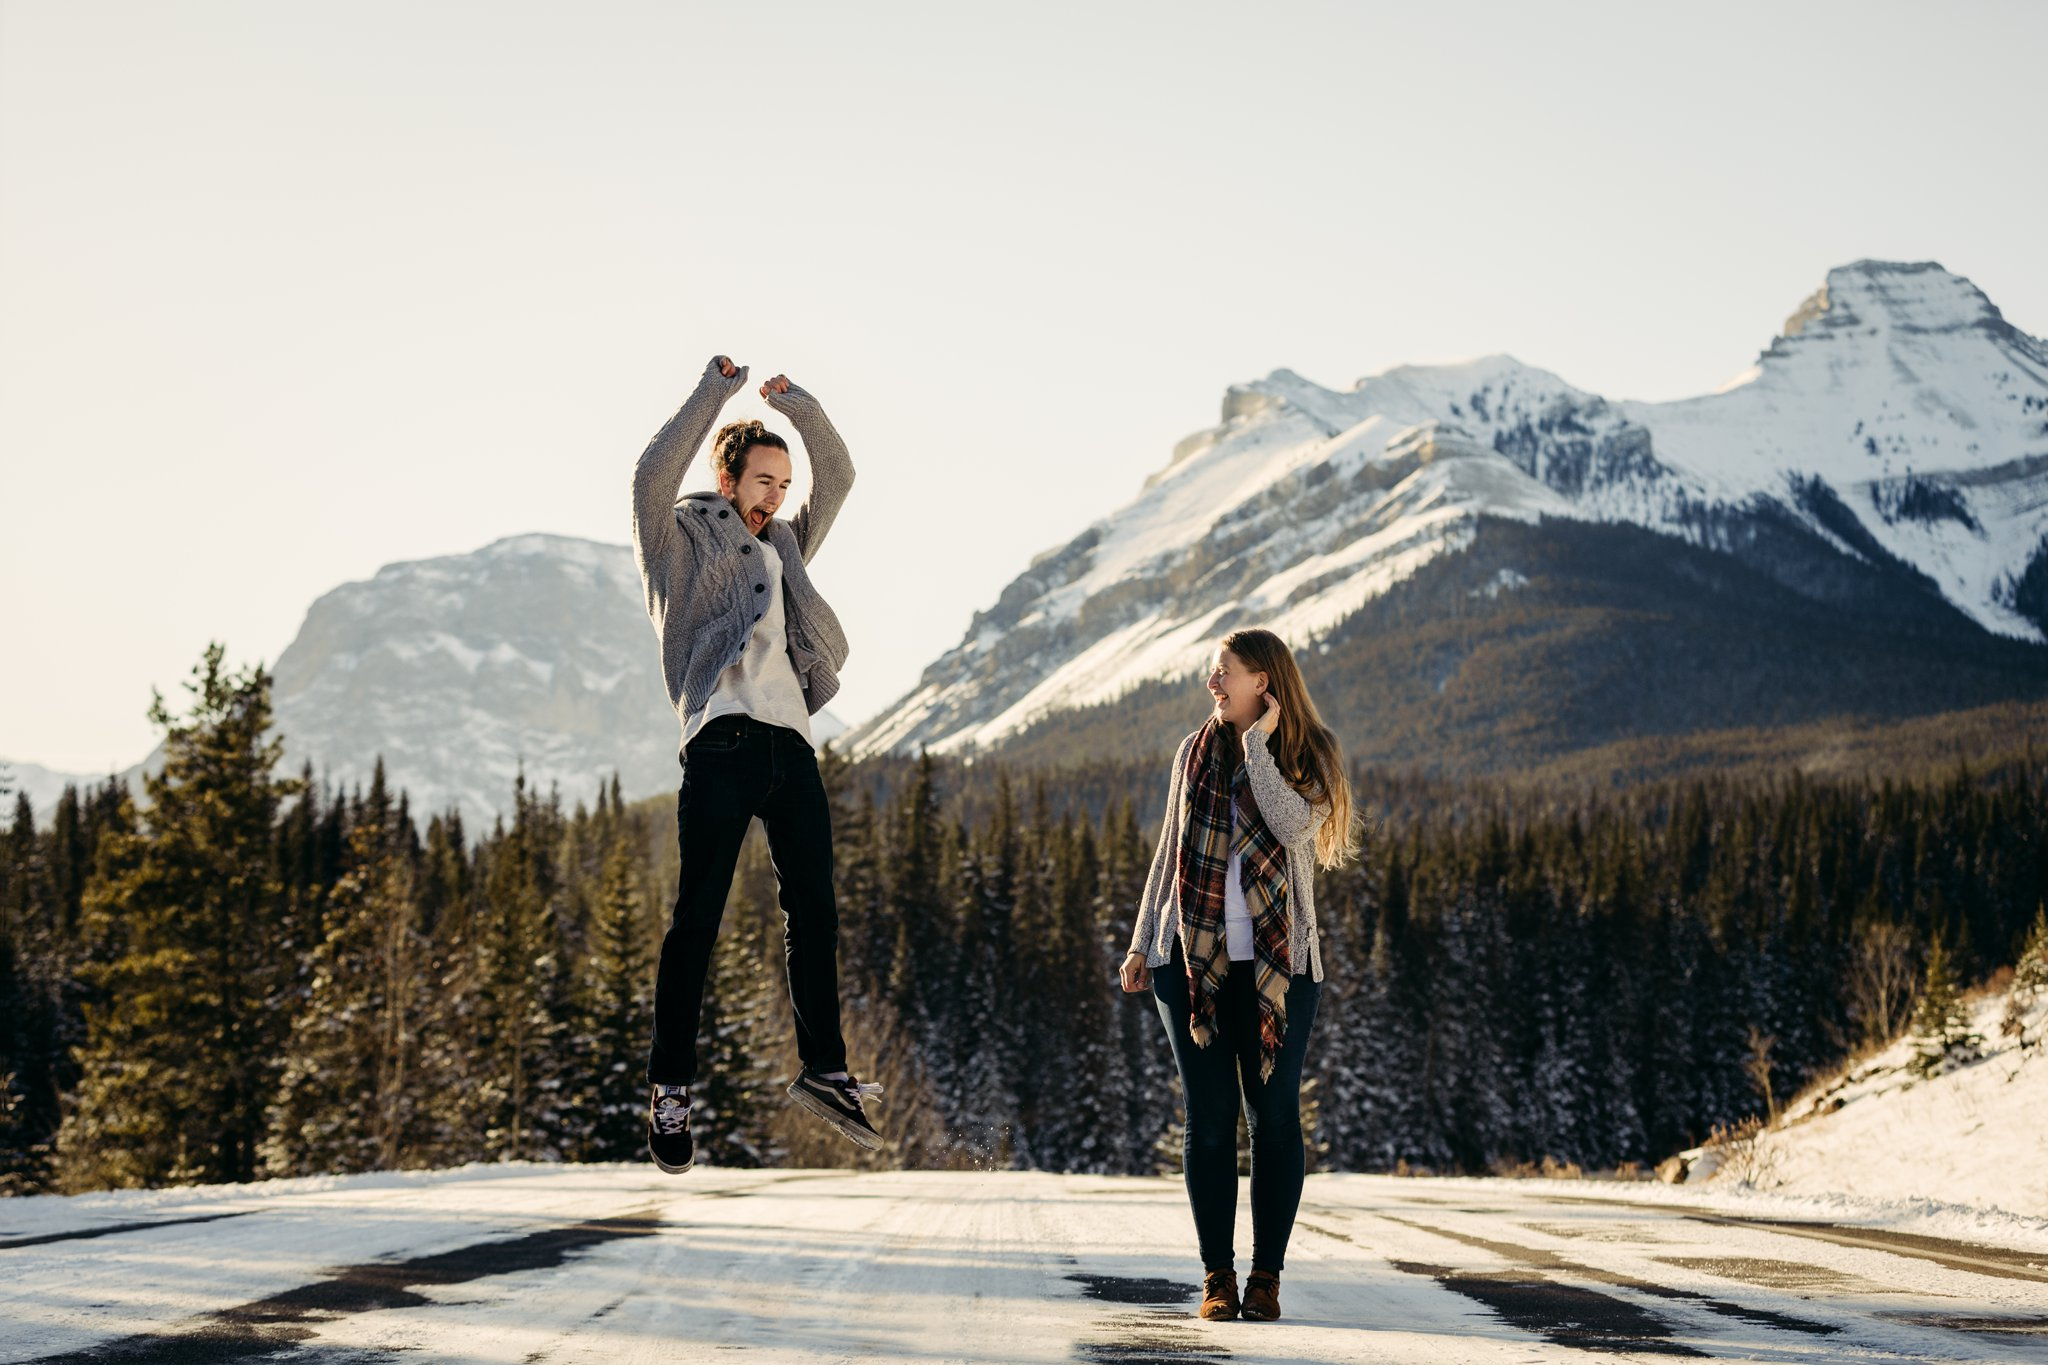 AshleyDaphnePhotography Calgary Photographer Wedding Engagement Sheep River Provincial Park Photos Kananskis Rocky Mountain Canmore Photographer_0034.jpg